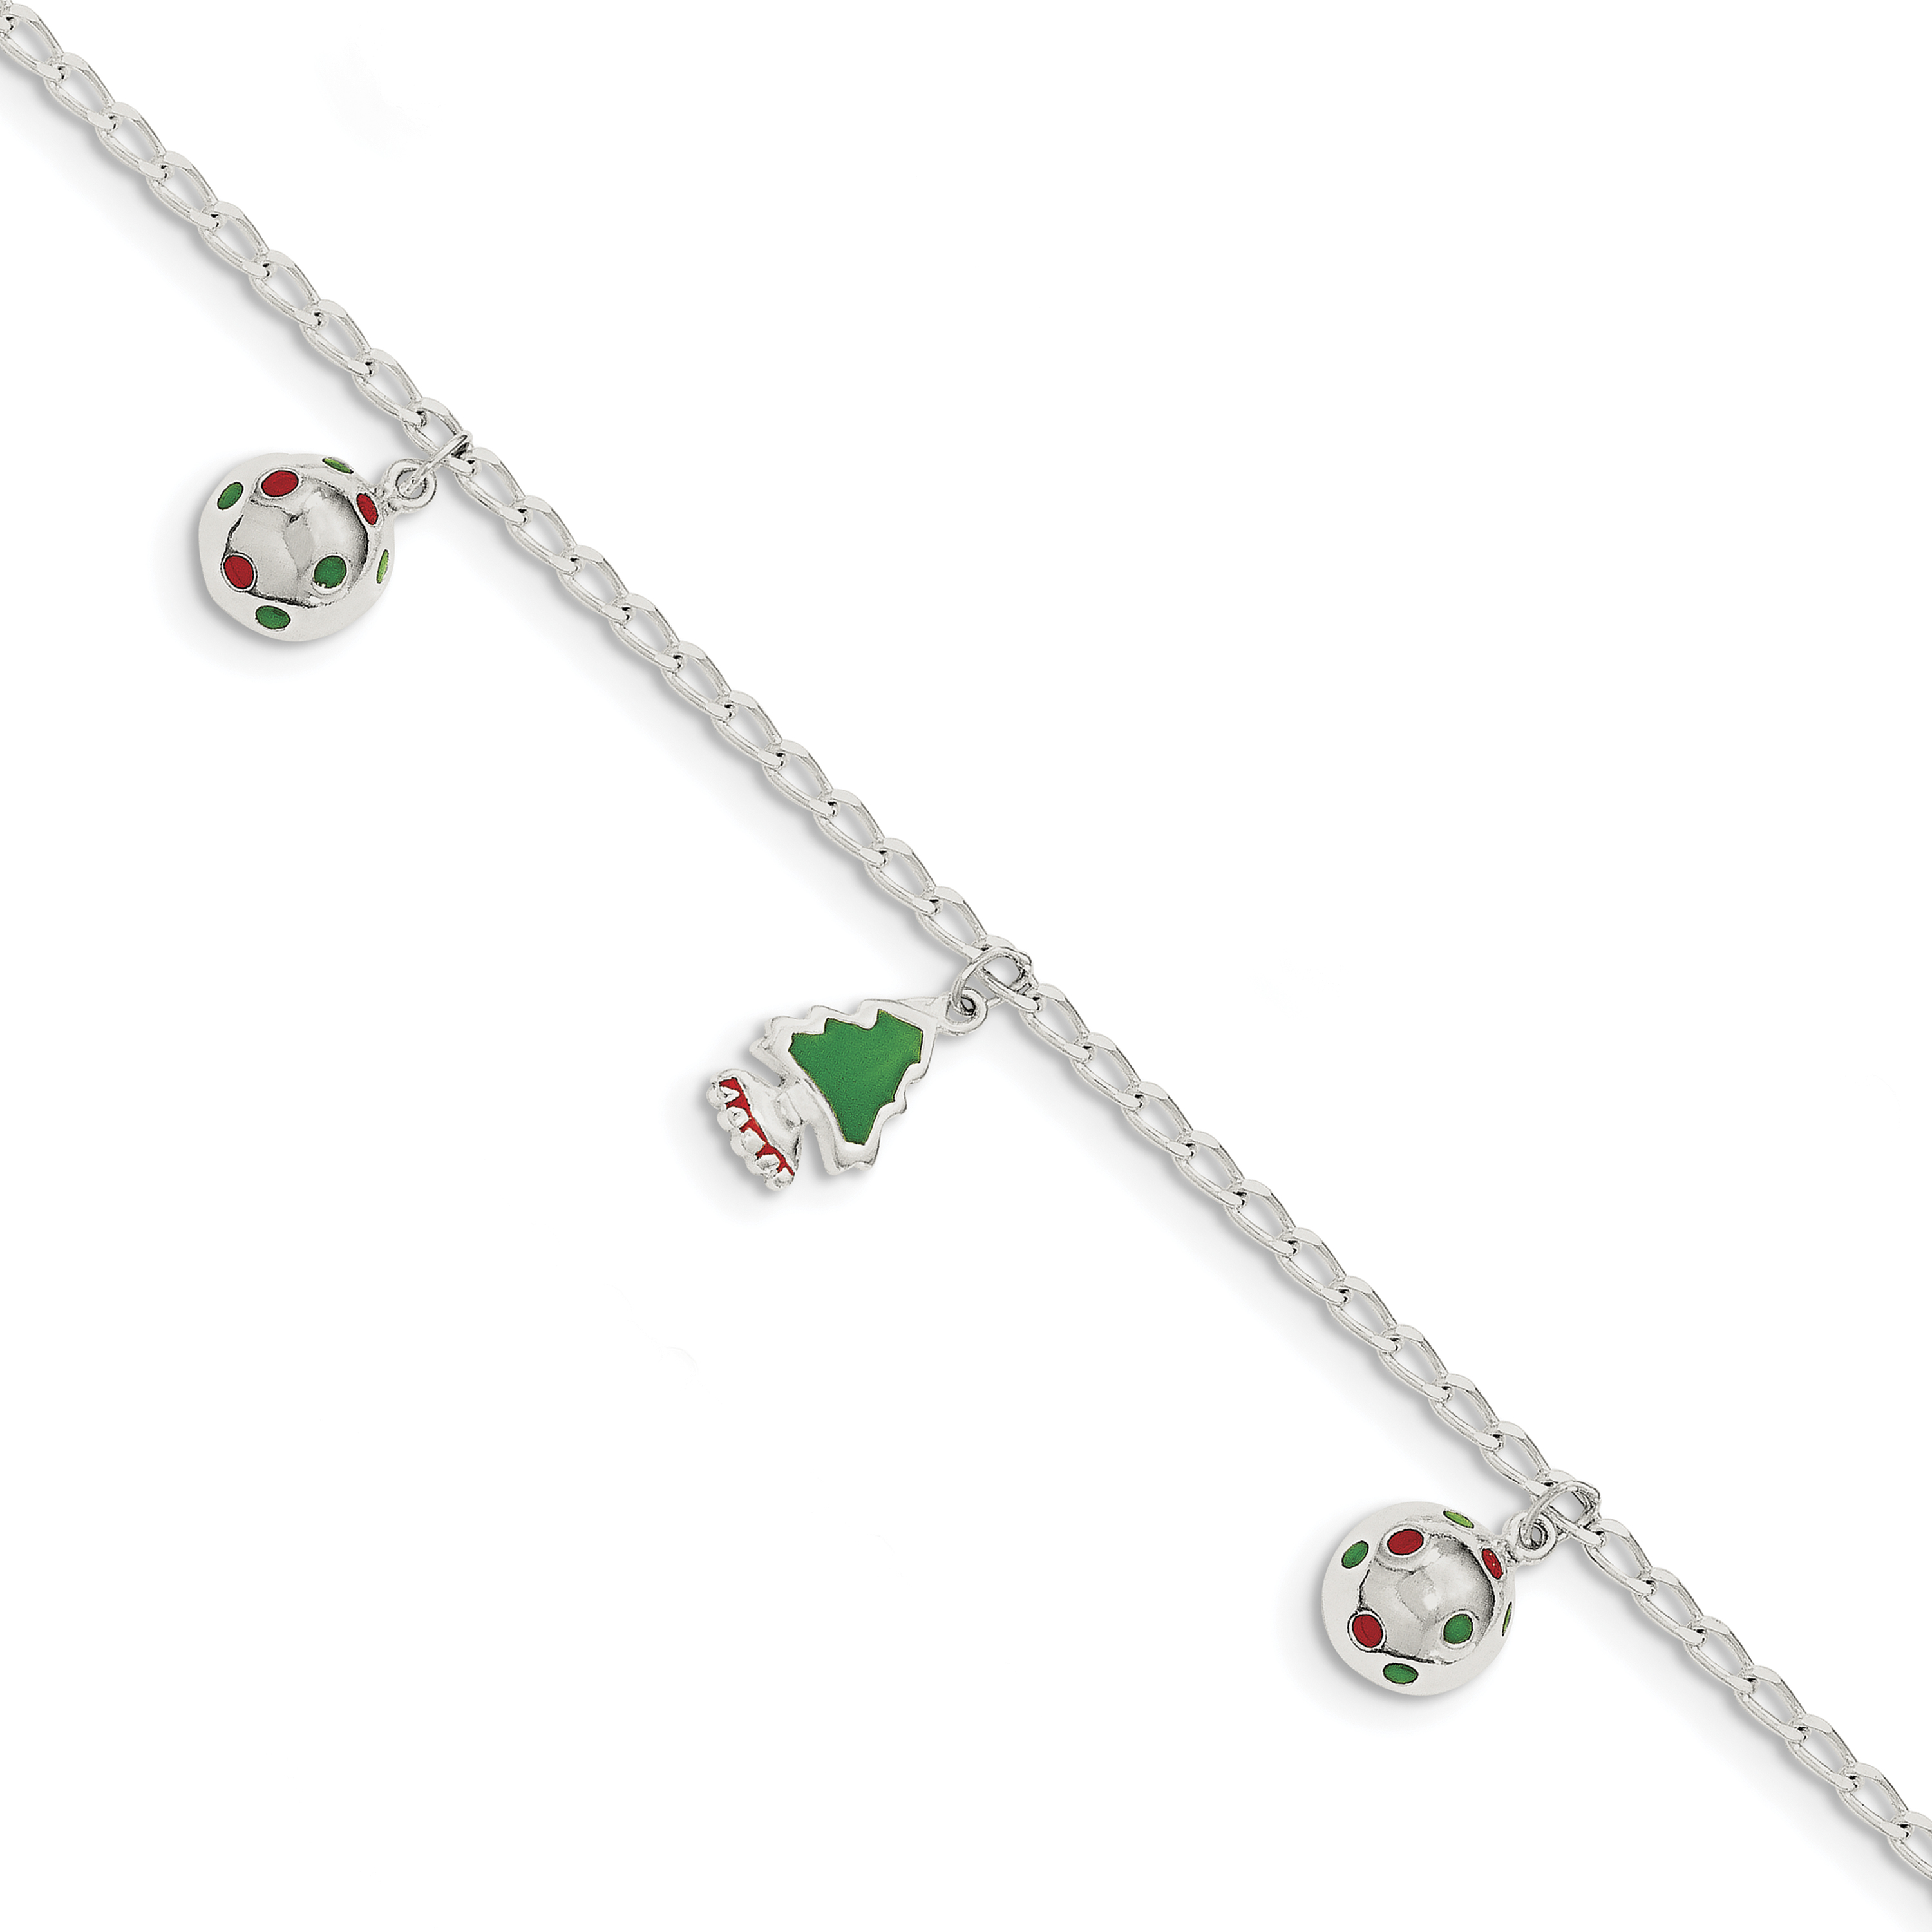 925 Sterling Silver Enamel Christmas Dangle Charm Bracelet 7.50 Inch Holiday Fine Jewelry Gifts For Women For Her - image 4 of 4